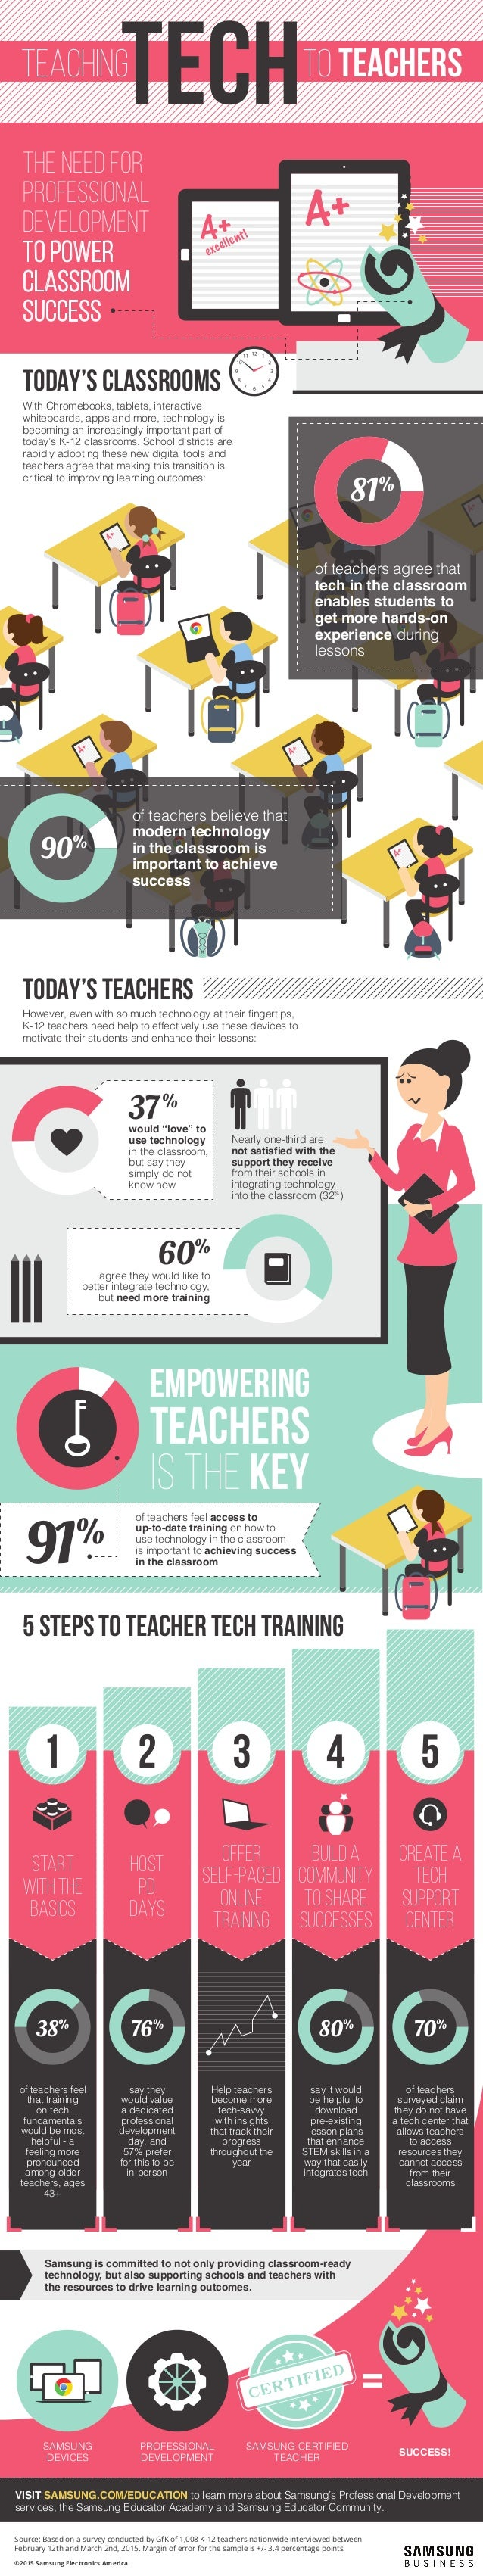 The Need for Professional Development to Power Classroom Success TEACHING TO TEACHERS TODAY'S CLASSROOMS TODAY'S TEACHERS ...